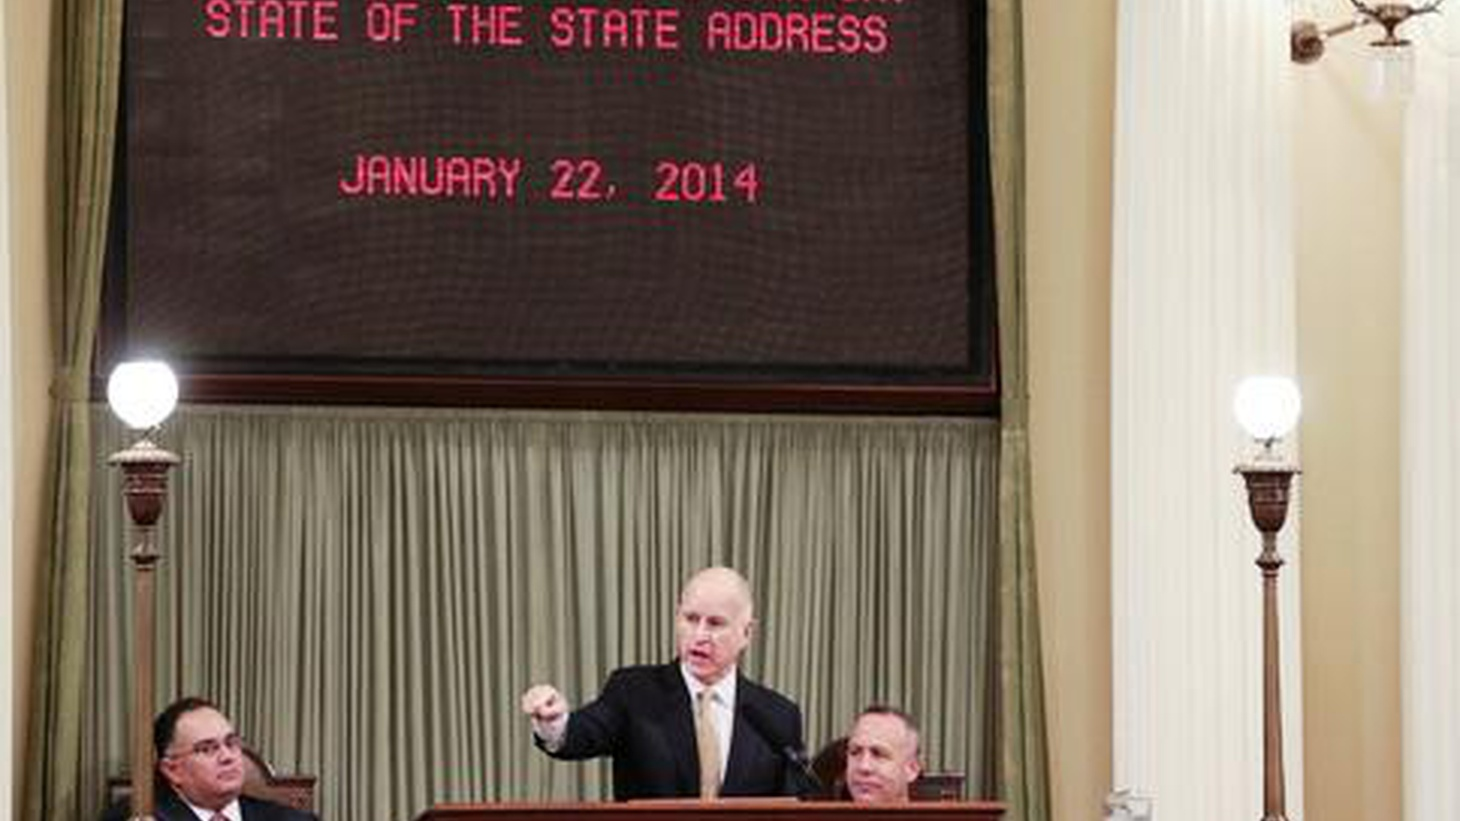 Today in Sacramento, Jerry Brown delivered his annual State of the State speech. We hear what he said, what he didn't say, and what his dog, Sutter, had to do with it.